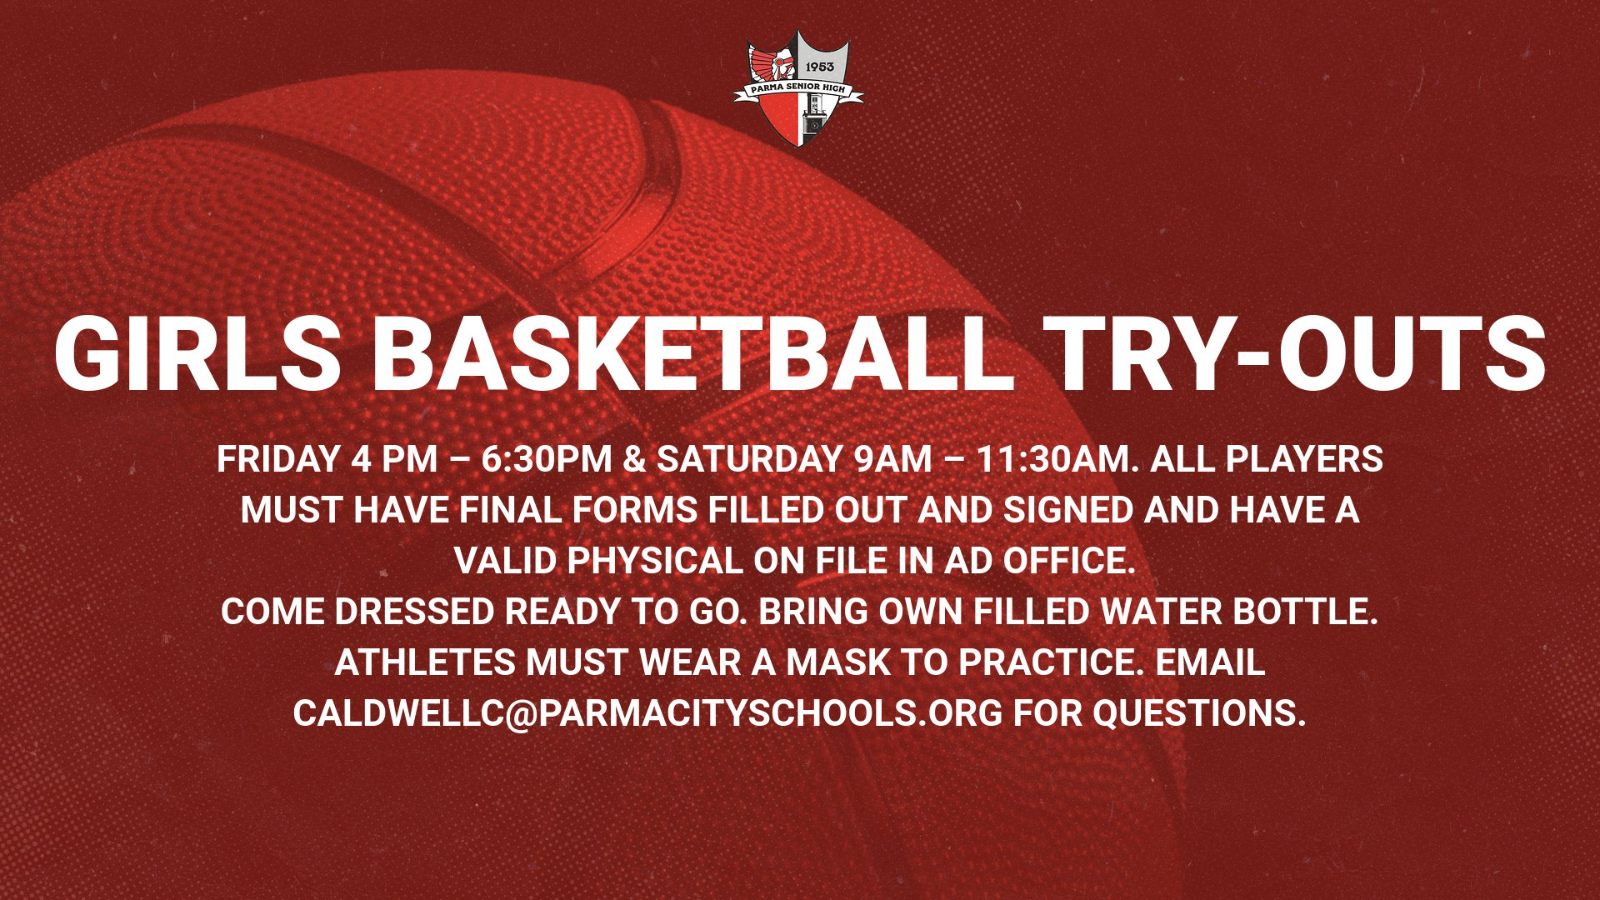 Girls Basketball Tryouts Begin Friday. Get in the Game!